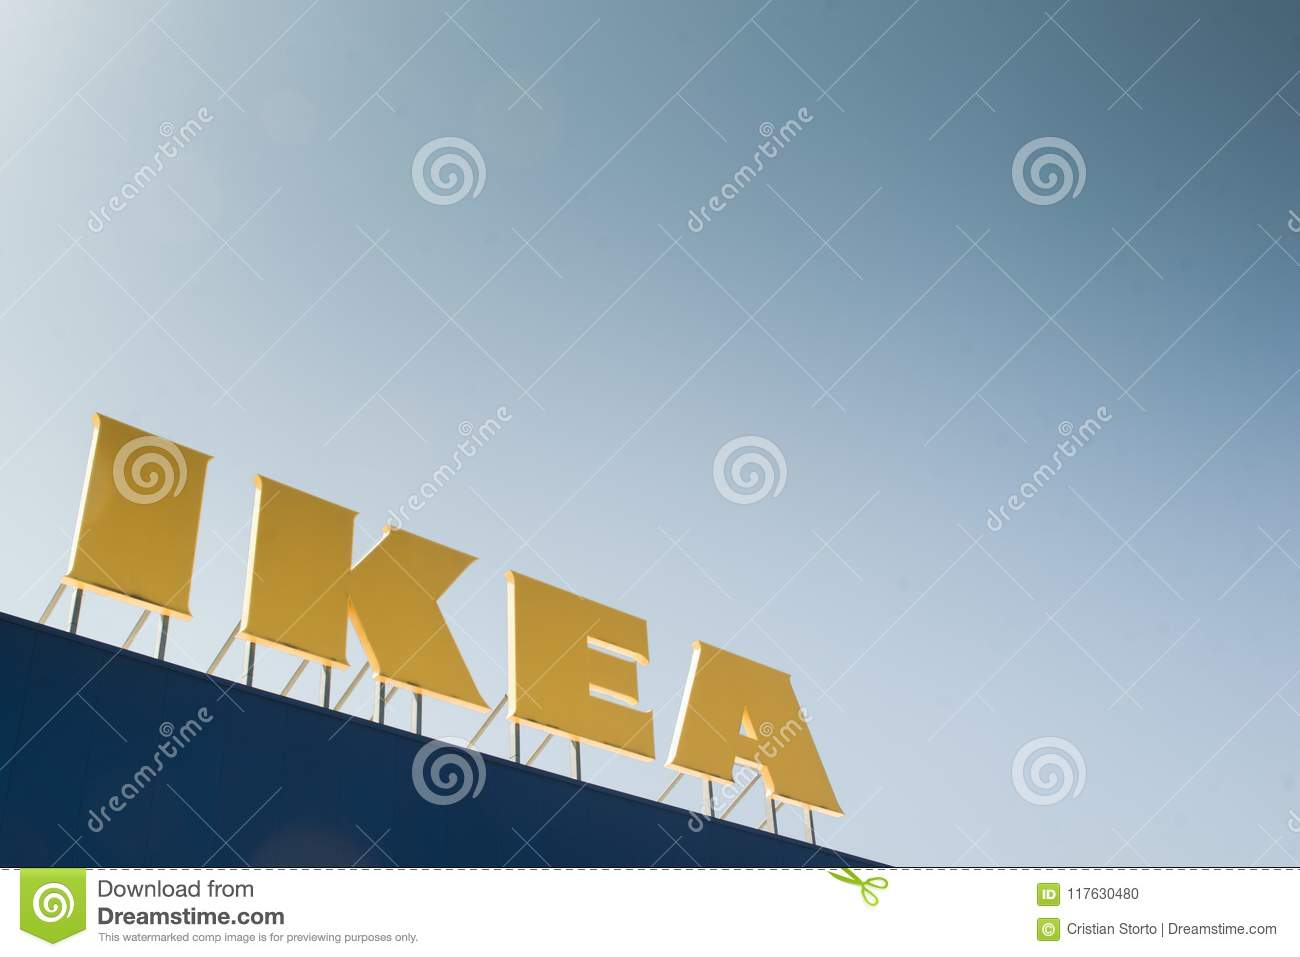 Ikea Logo On Top Of A Store Editorial Image Image Of Modern Ikea